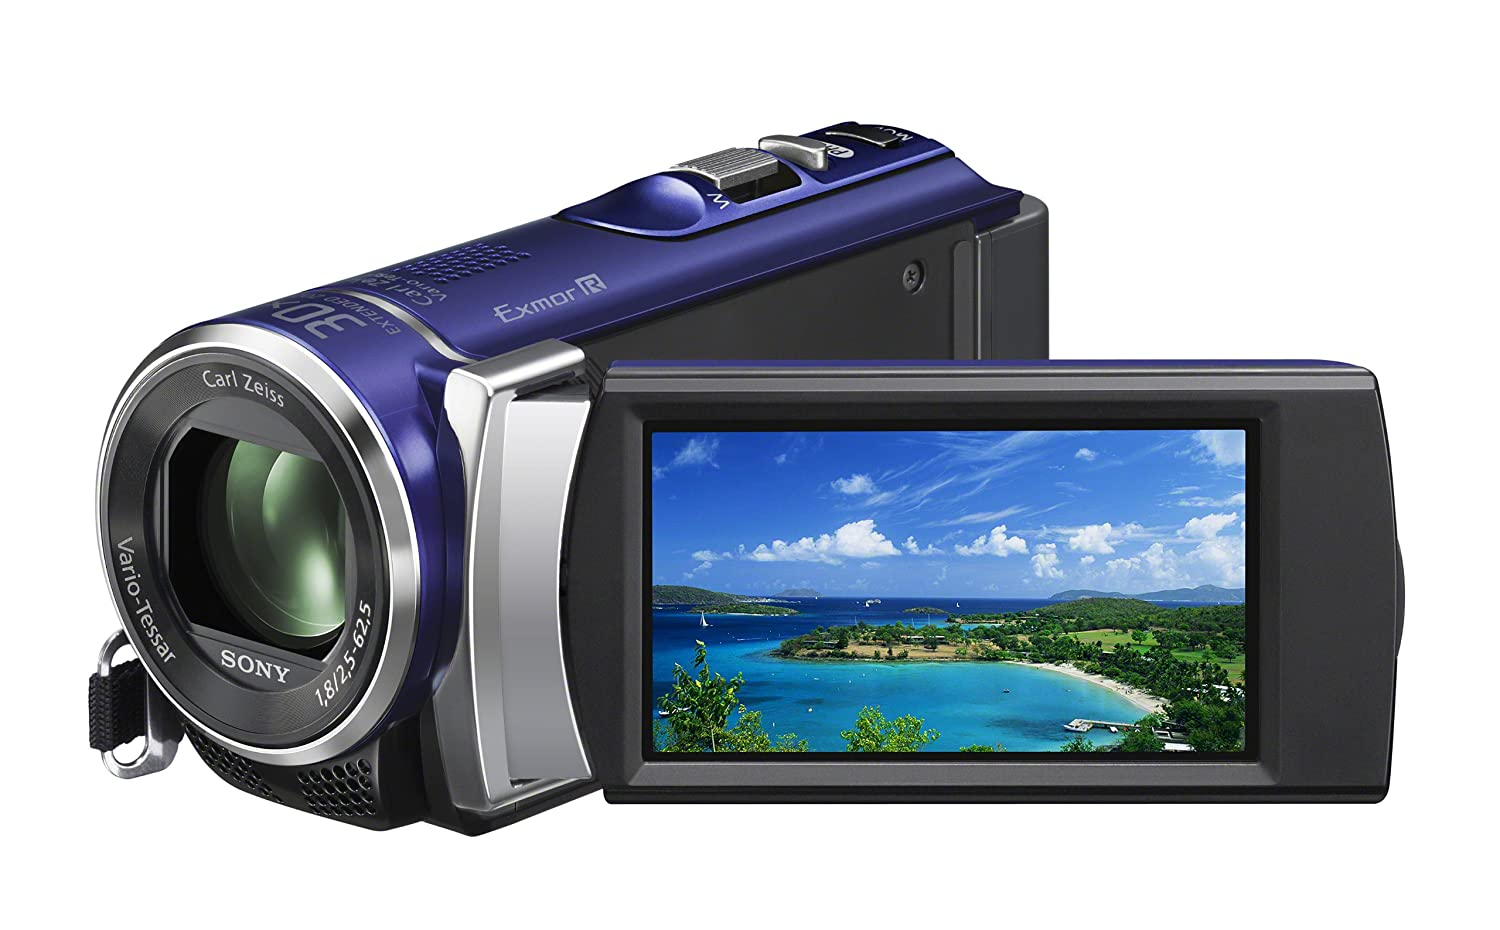 amazon com sony hdr cx210 high definition handycam 5 3 mp rh amazon com sony handycam hdr-cx210 manual sony hdr cx210 manual download